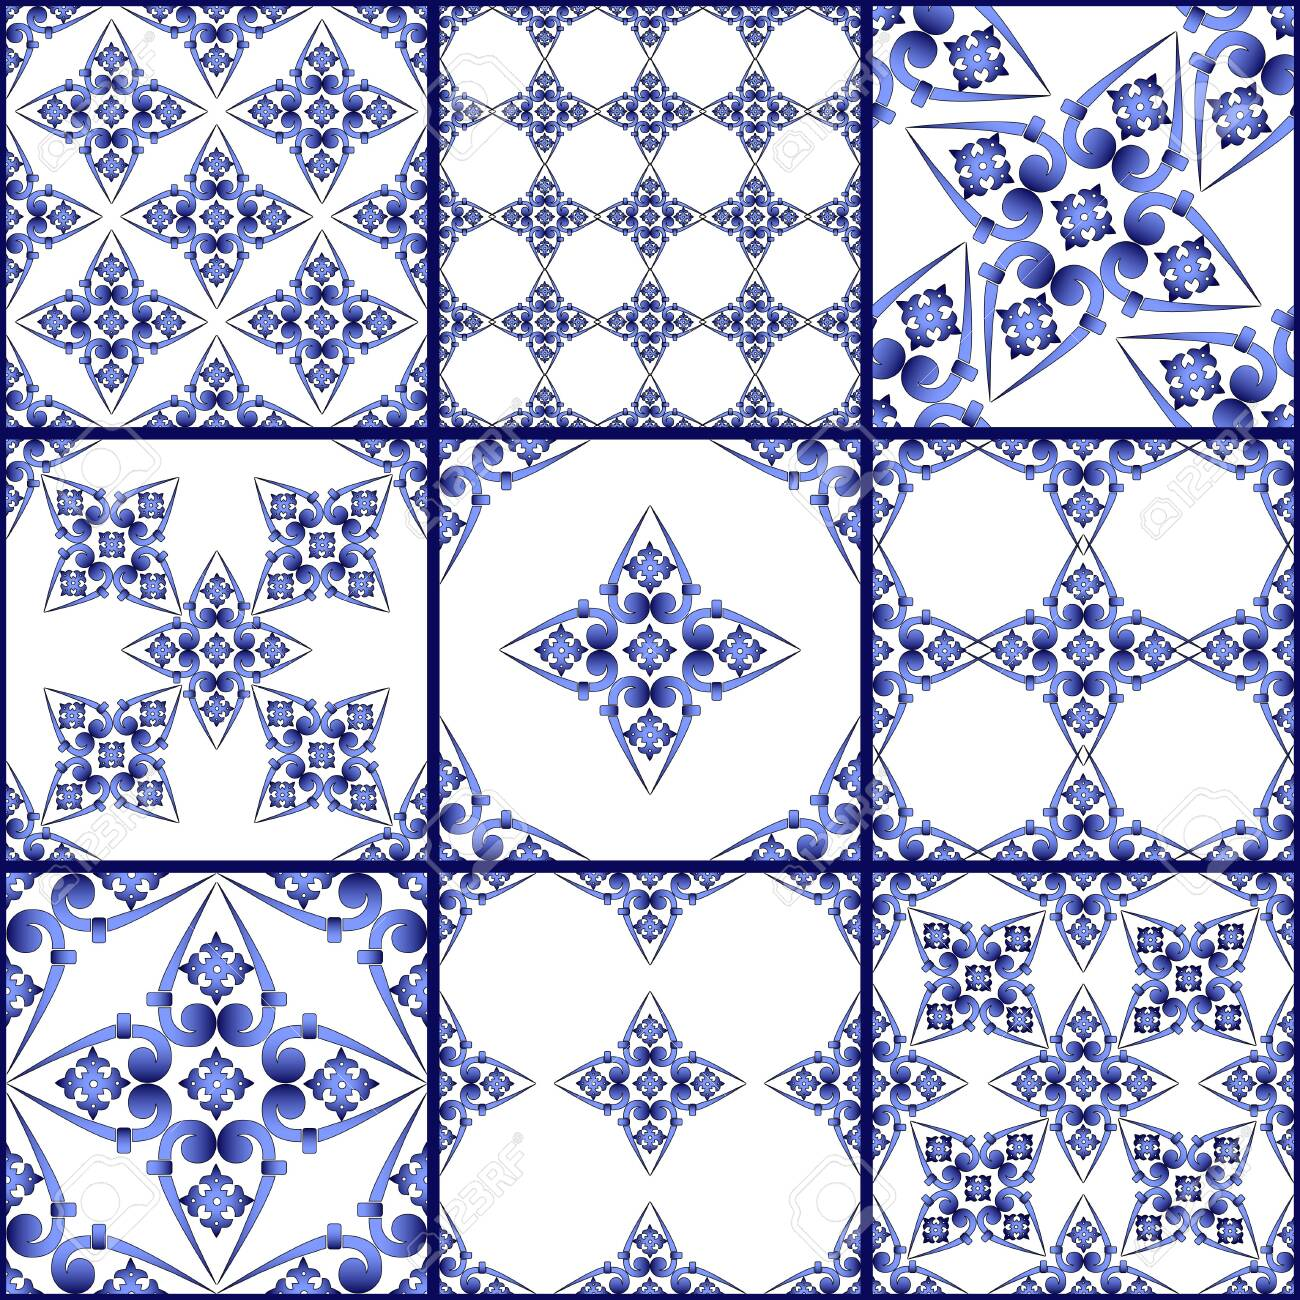 Seamless patchwork tile. Majolica pottery tile. Portuguese and Spain decor. Ceramic tile in talavera style. Vector illustration. Abstract seamless patchwork pattern with geometric and floral ornament - 145344337